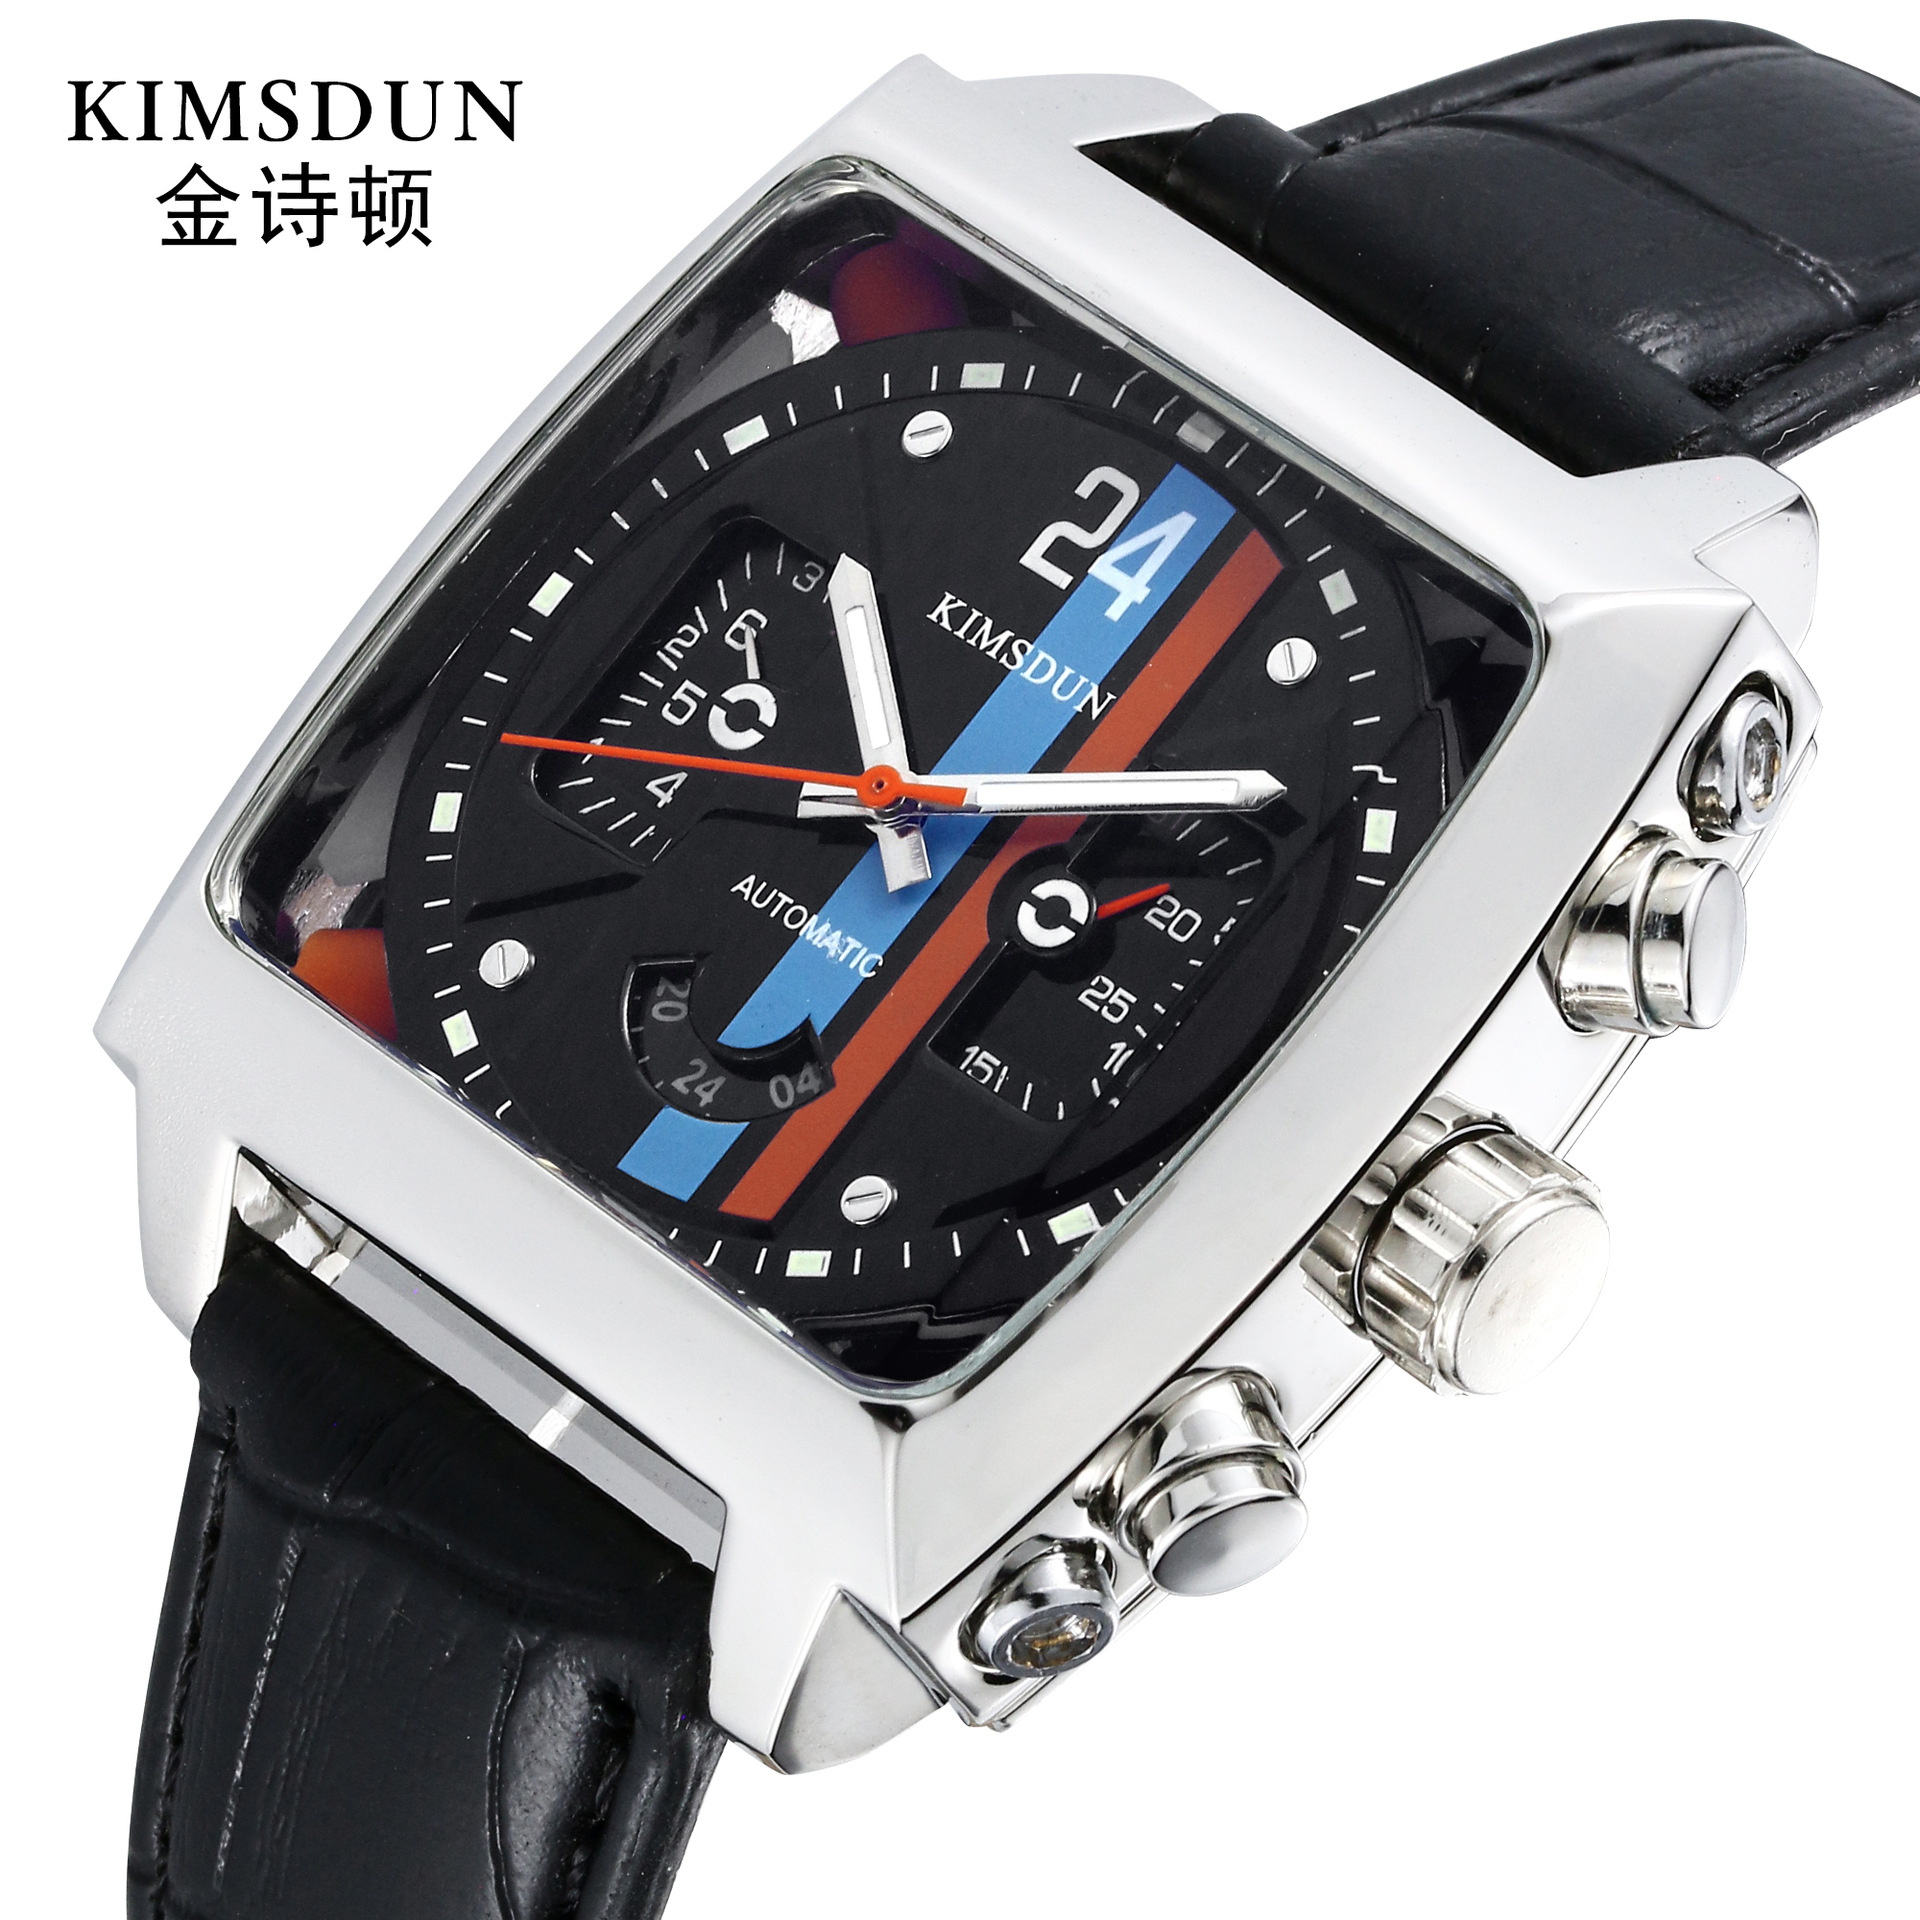 Authentic Style Square Belt Men's Watch Leisure Sports Waterproof Automatic Mechanical Watch Gifts For Men Week Display